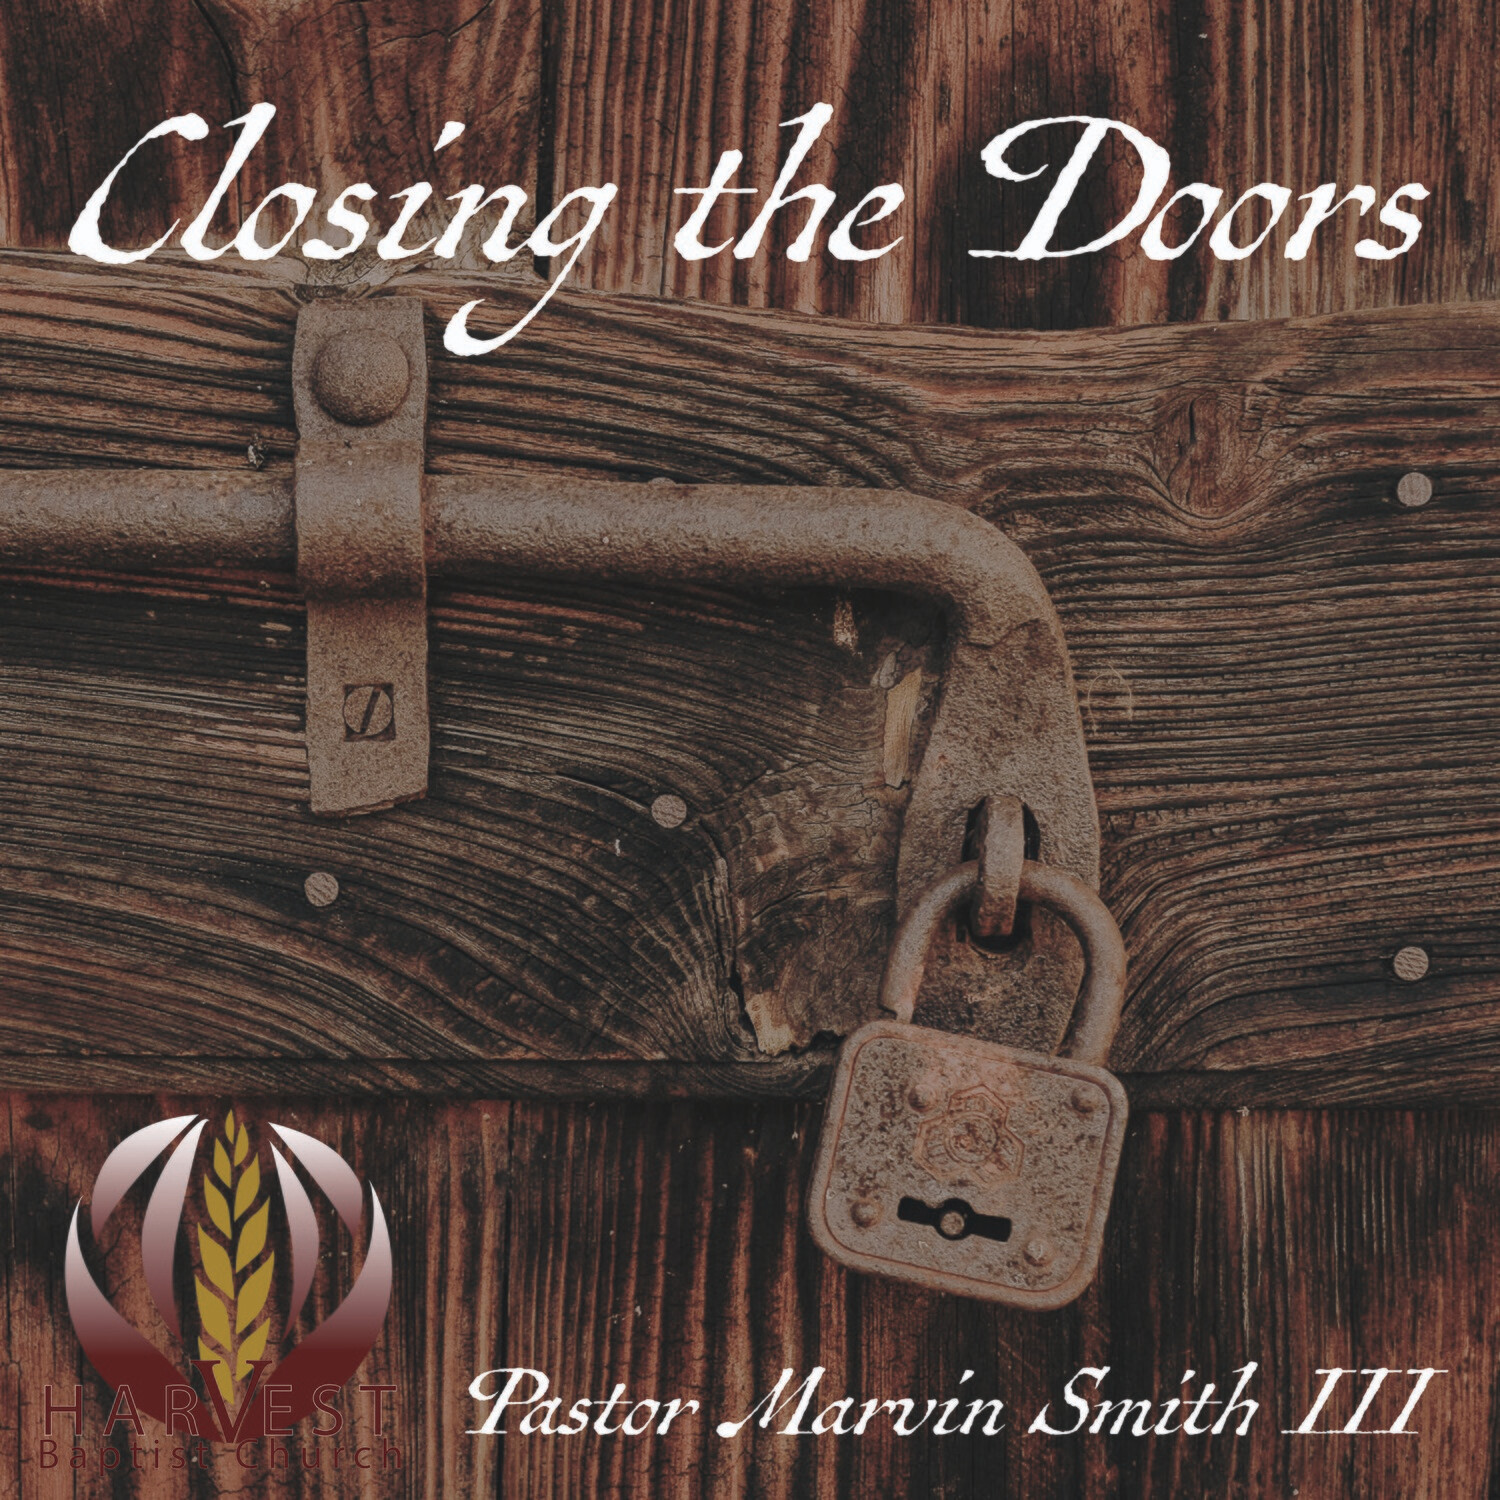 Closing the Doors